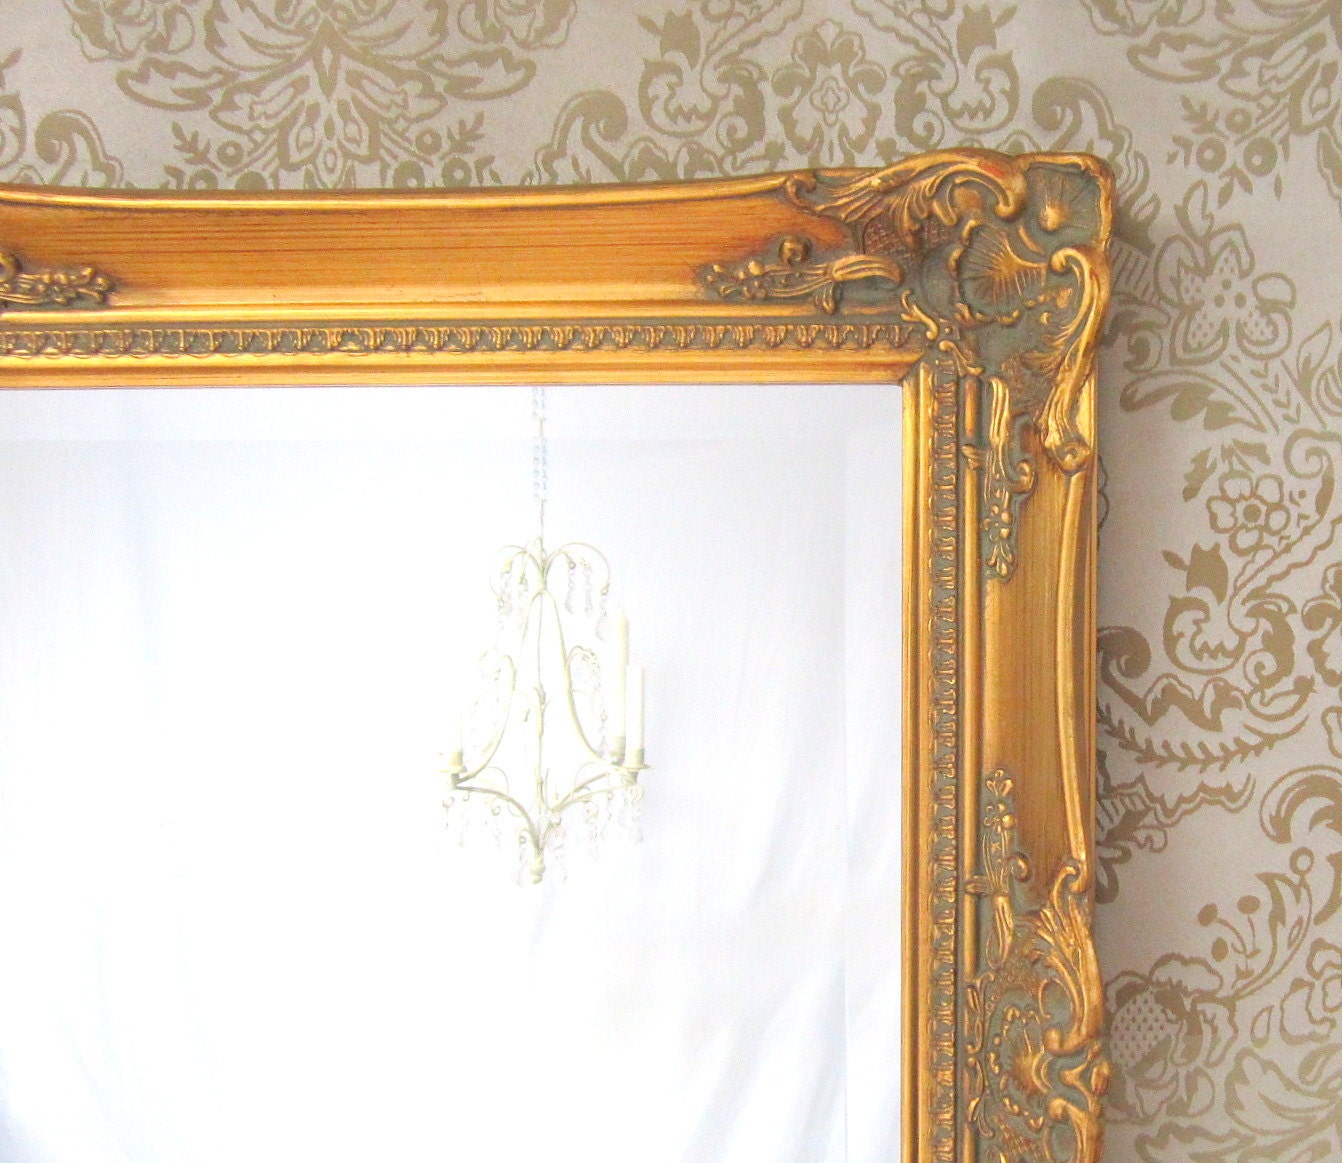 Neoclassic framed mirror 45x24 39 large teal blue by for Baroque bathroom mirror